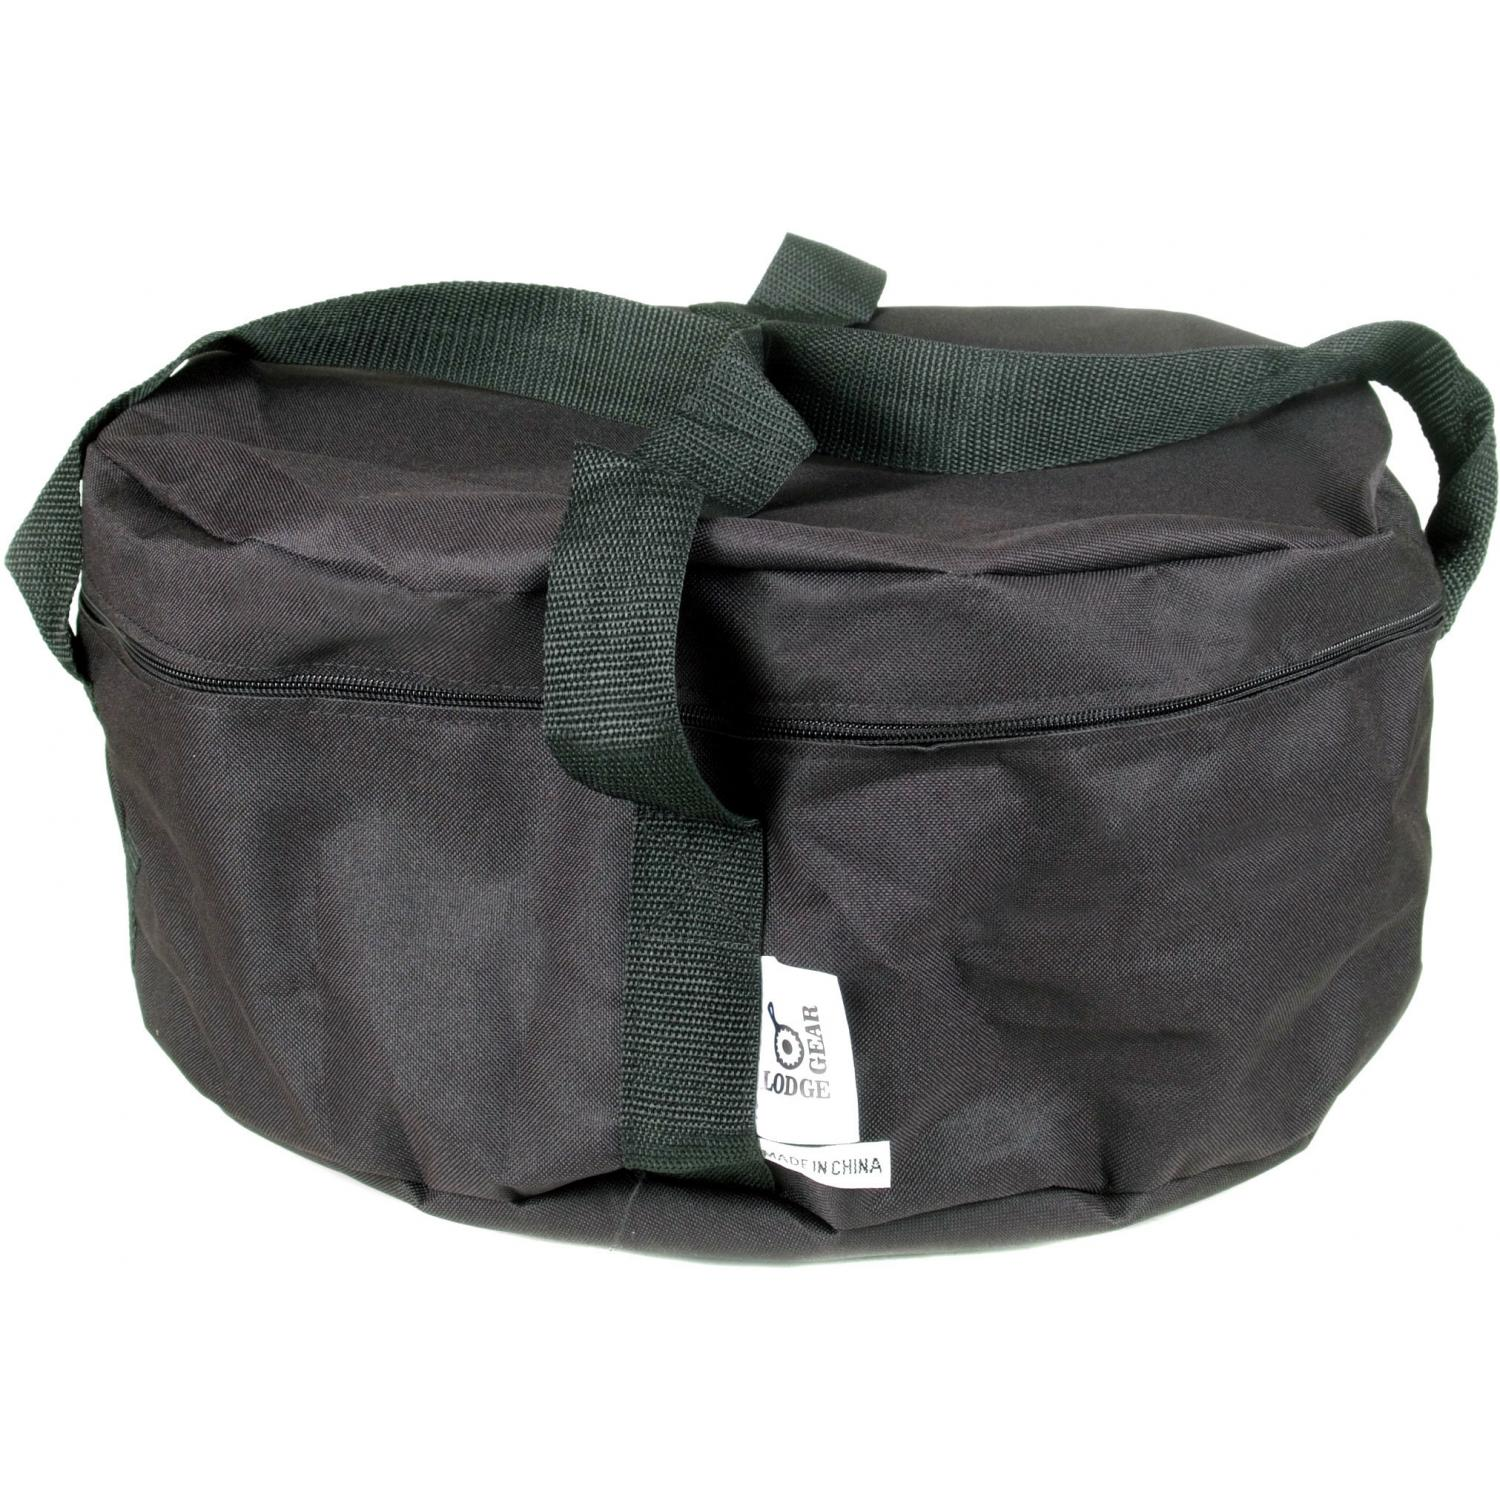 Lodge Tote Bag For 10 Inch Camping Dutch Oven - A1-10